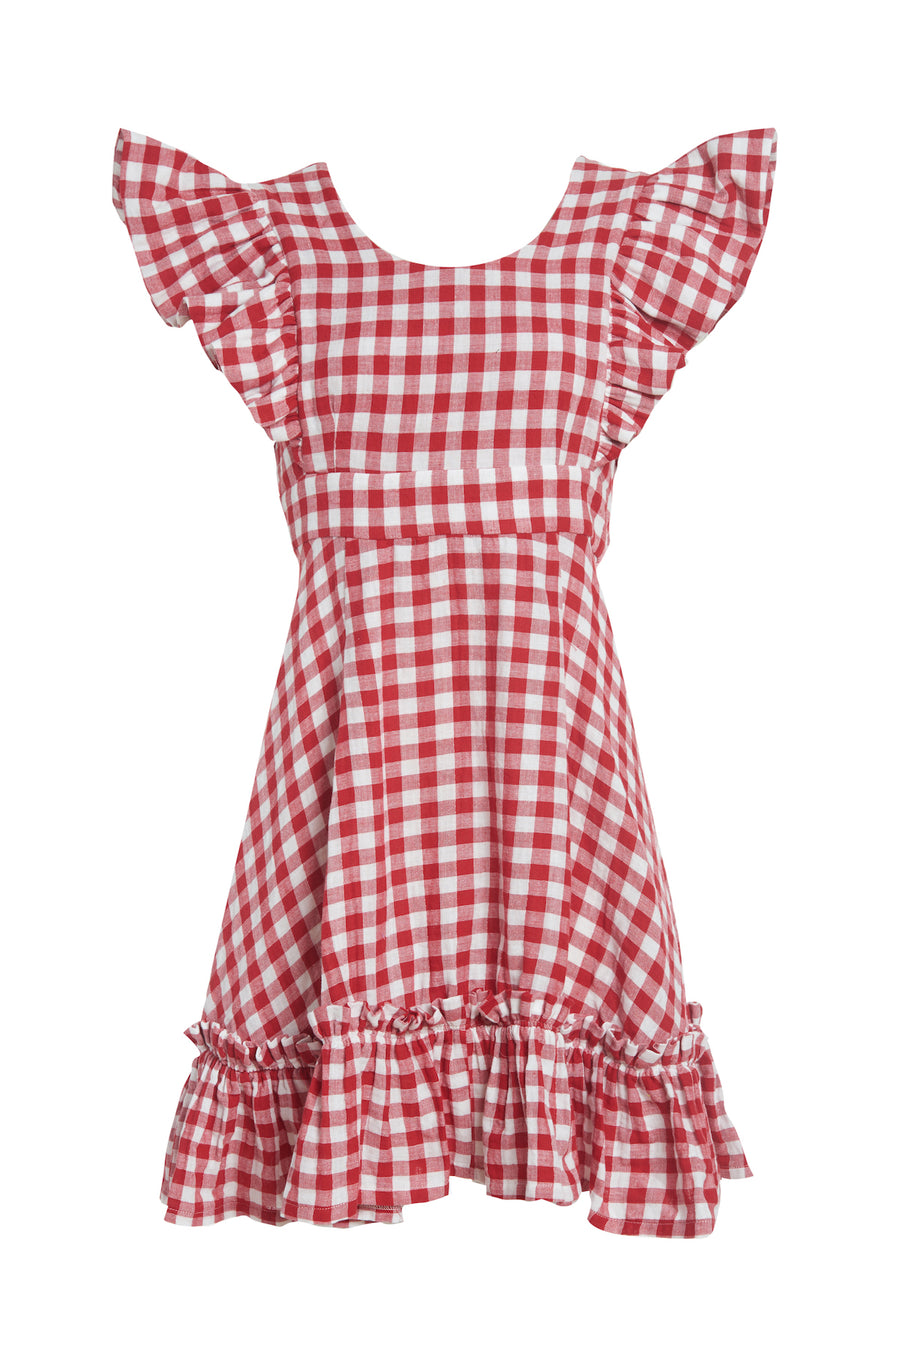 Quinoa Dress Red Gingham